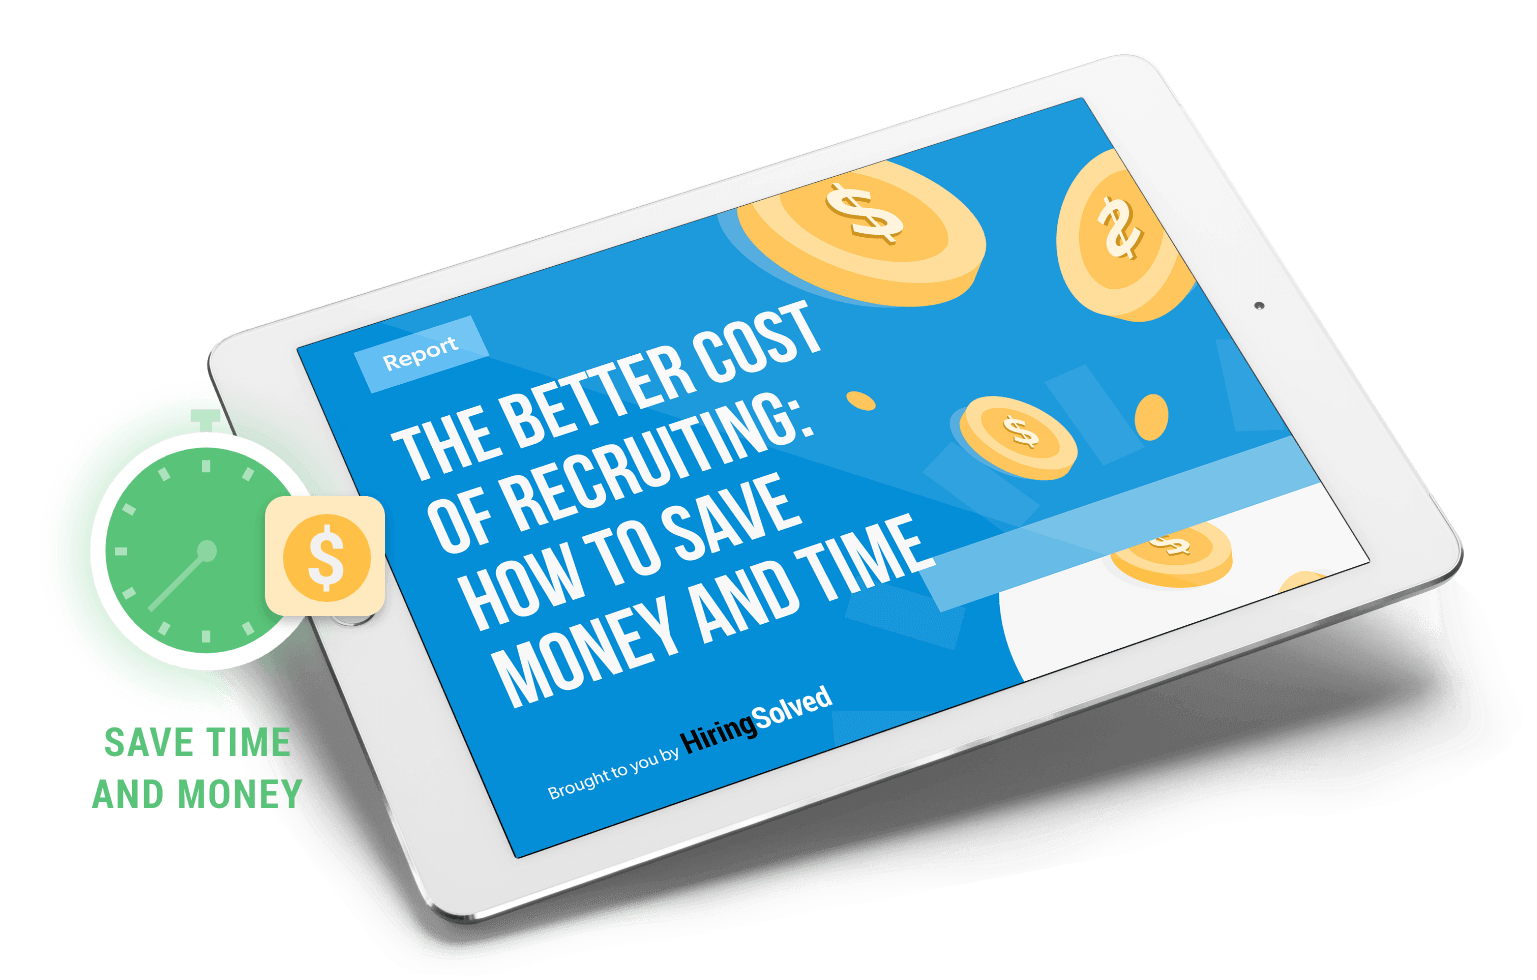 ipad with Better Cost of Recruiting text